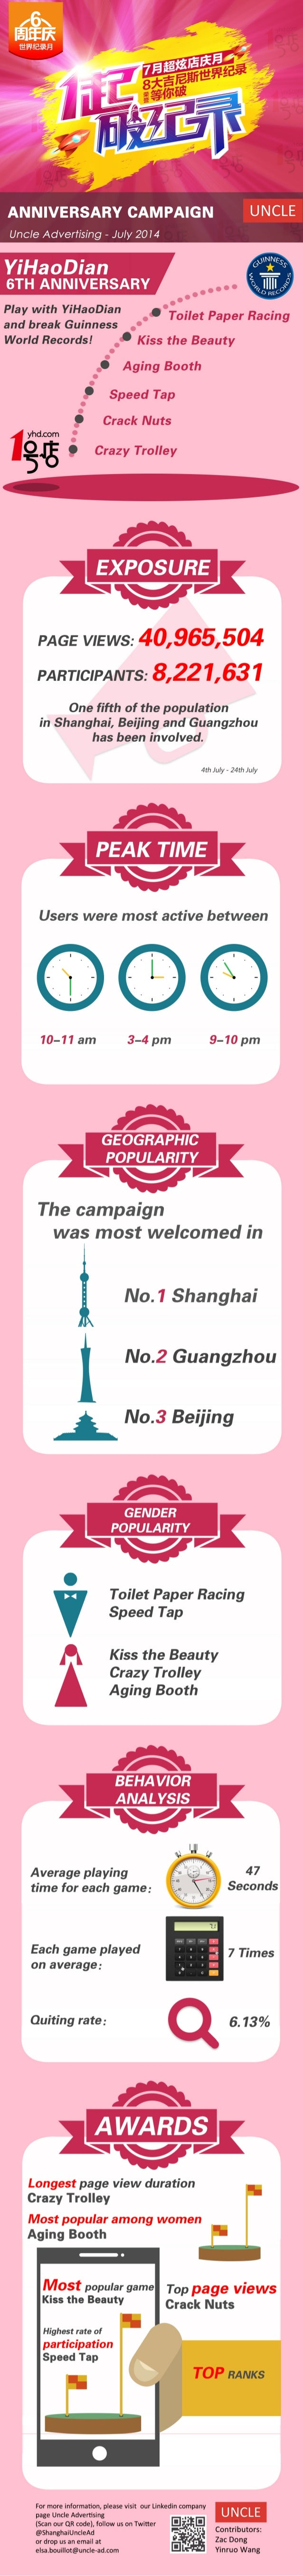 INFOGRAPHIC   Yihaodian 6th anniversary